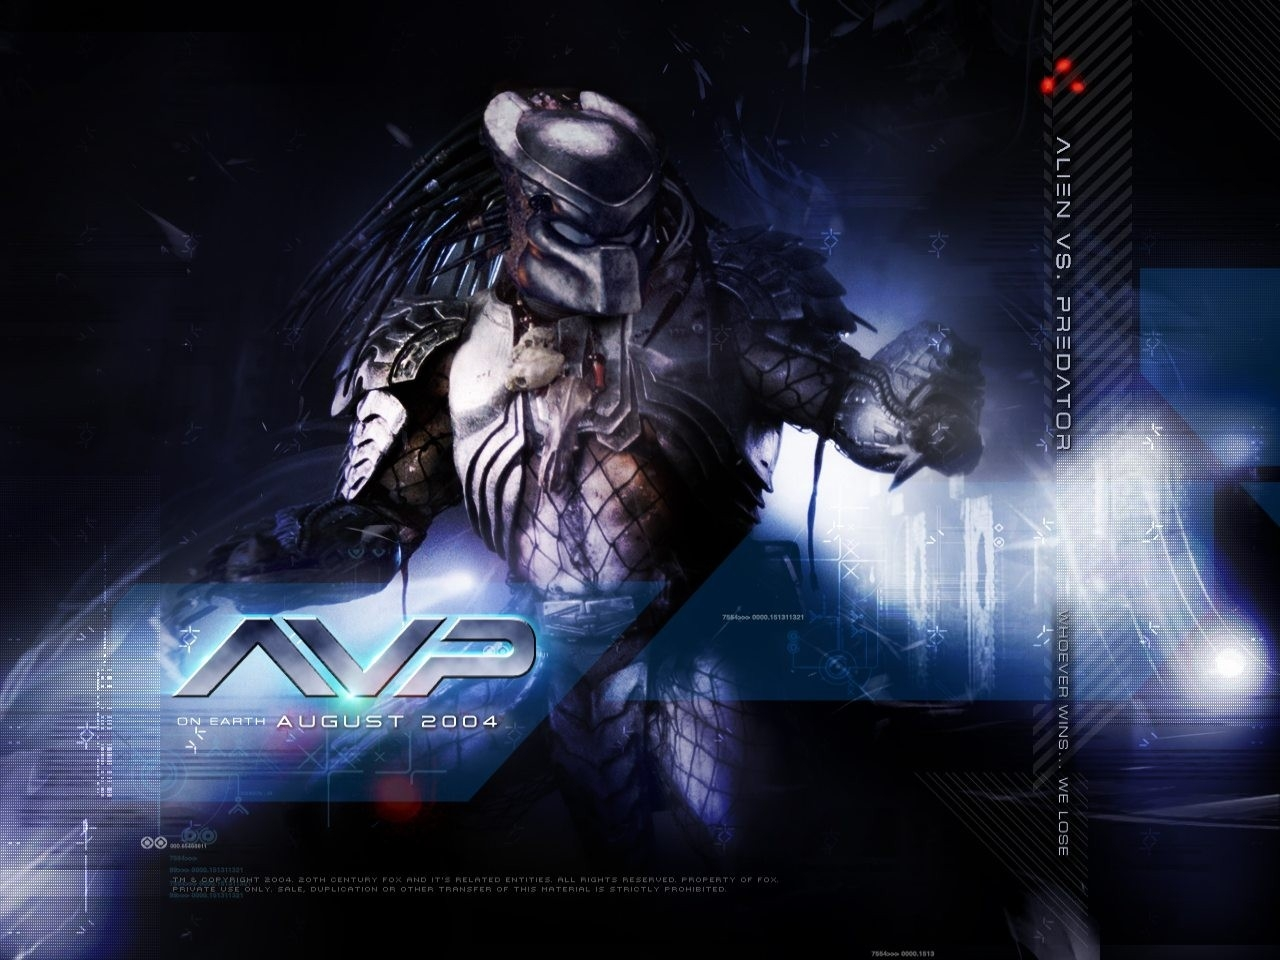 Wallpaper del film Alien Vs. Predator, del 2004